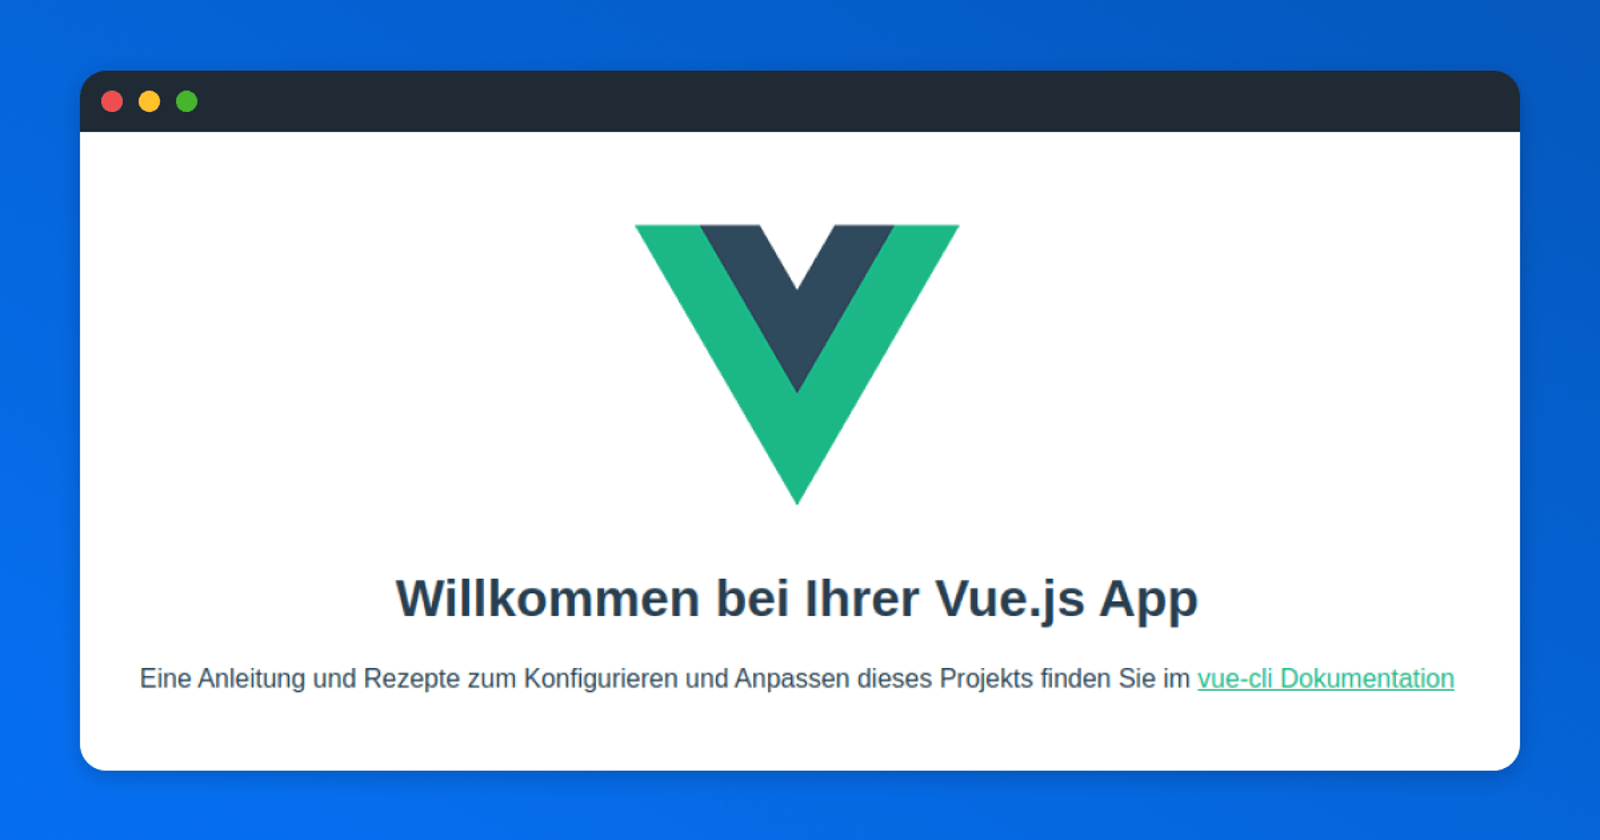 How to localize Vue.js app with vue-i18n and Localazy